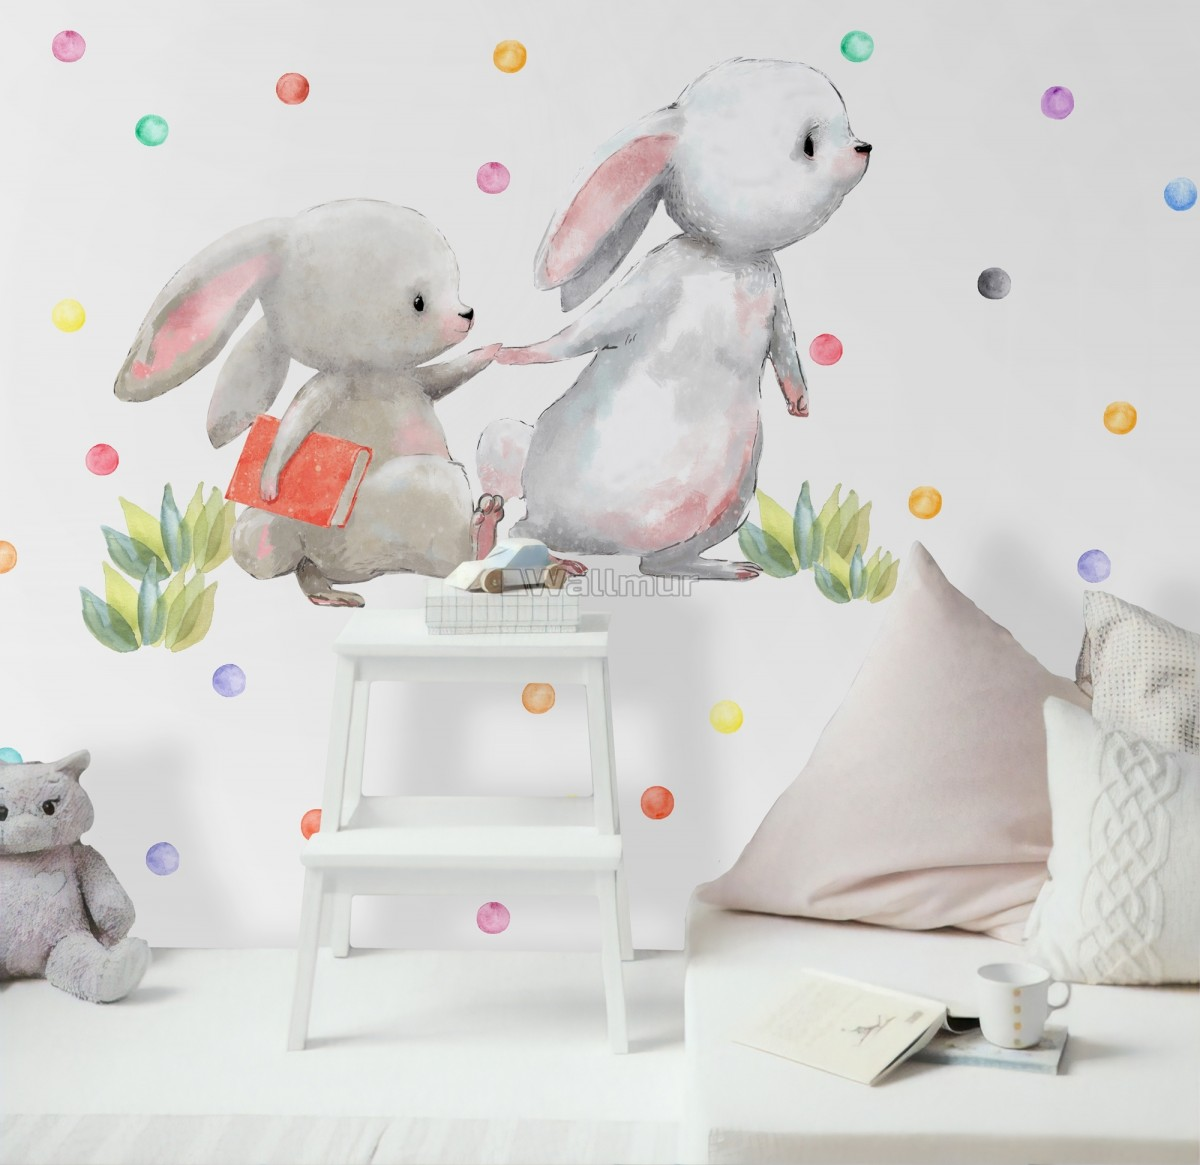 The Cute Bunny Reading Books with Colorful Polka Dots Wall Decal Sticker